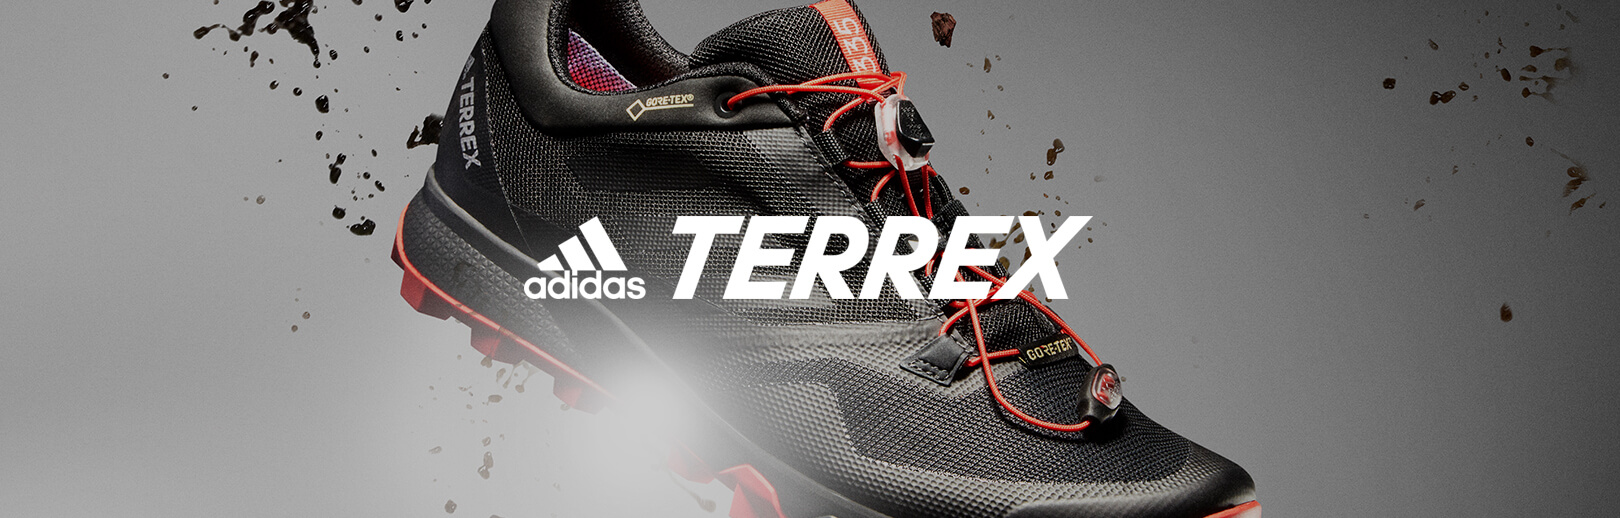 adidas Terrex - Gear Made For The Ups And Downs